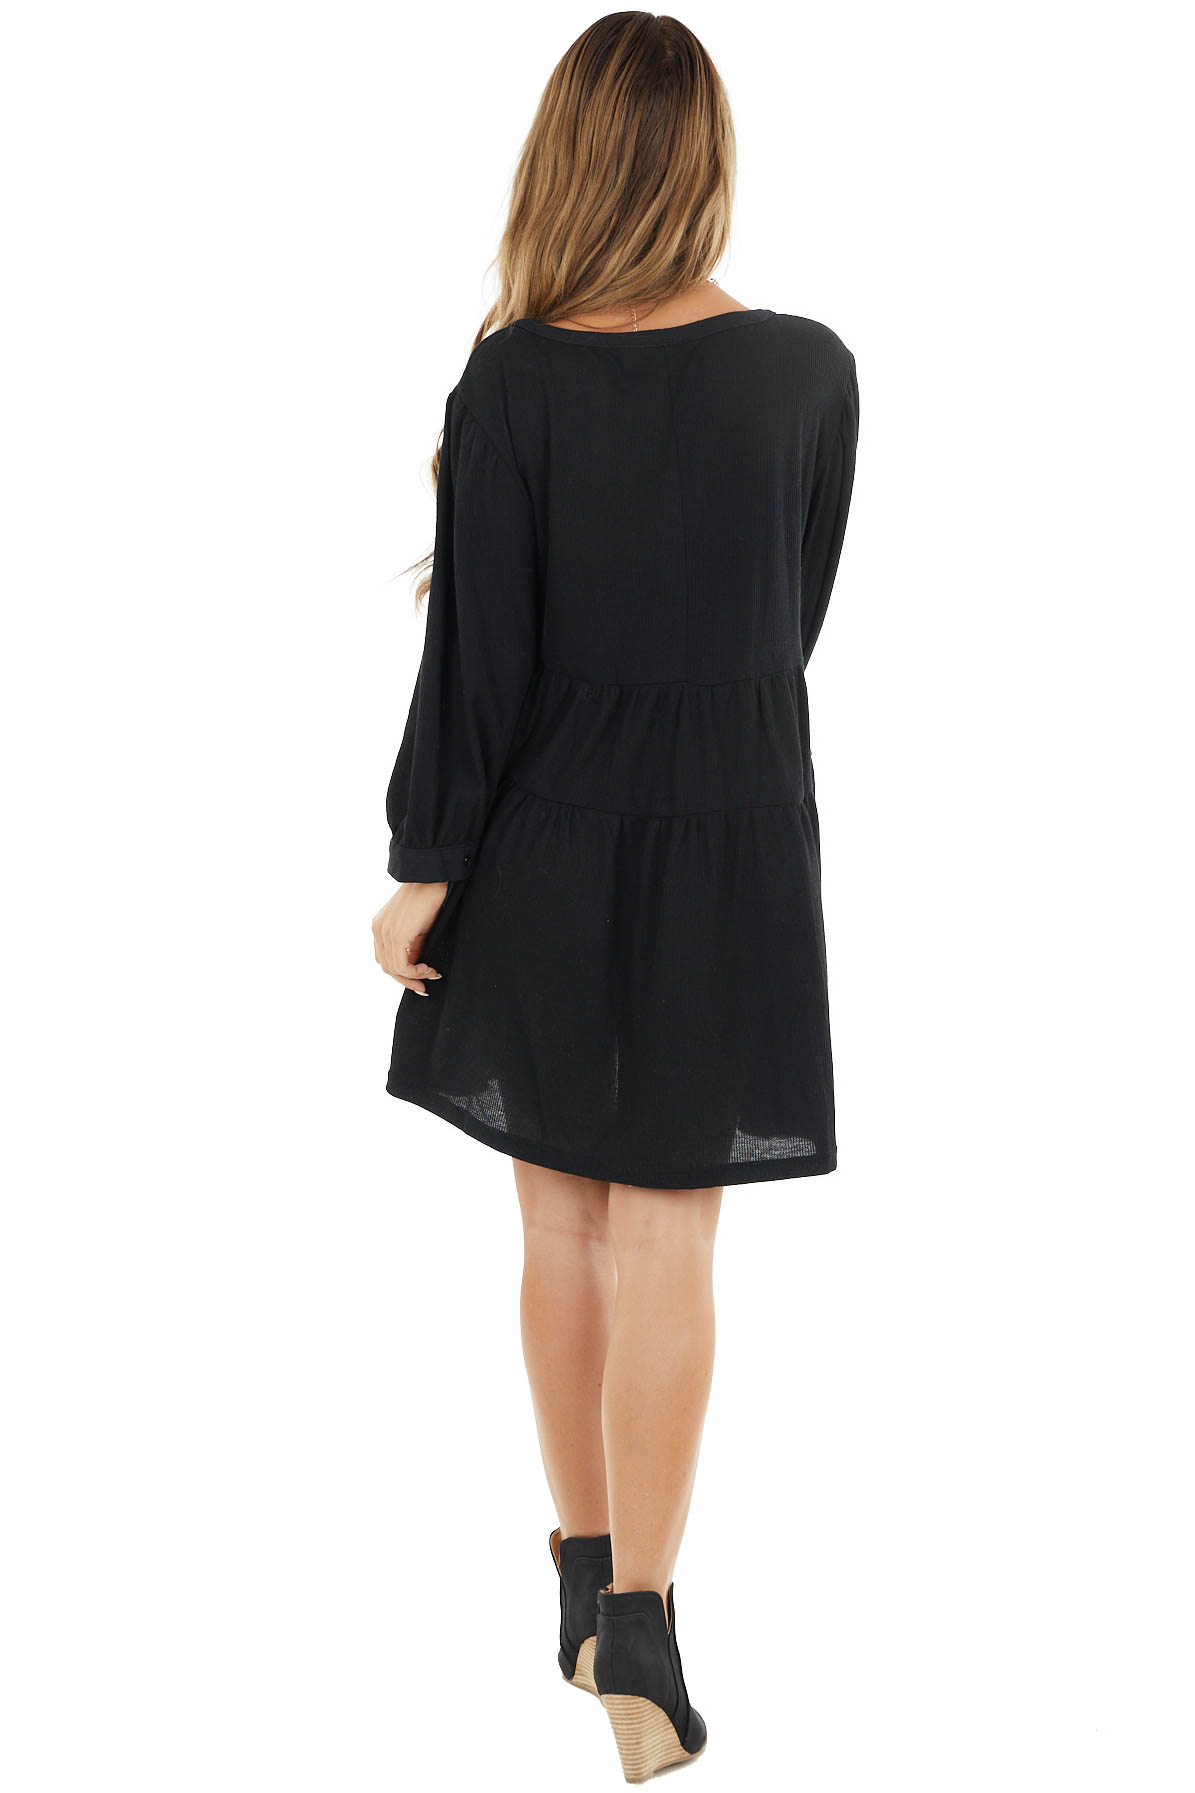 Black Henley Baby Doll Tiered Dress with Puff Sleeves